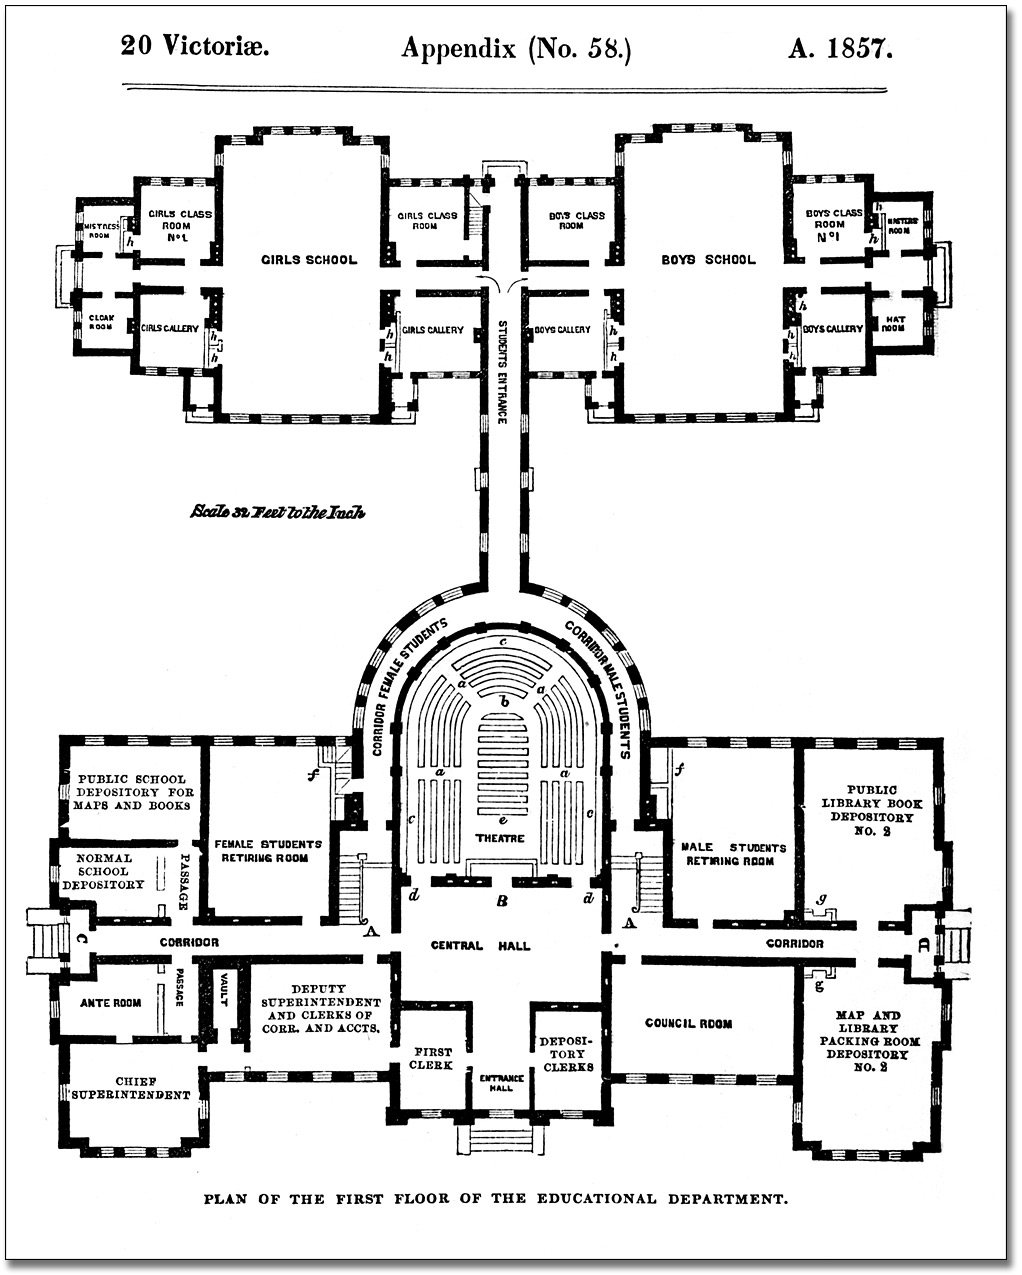 File:Architectural measured drawings showing the floor